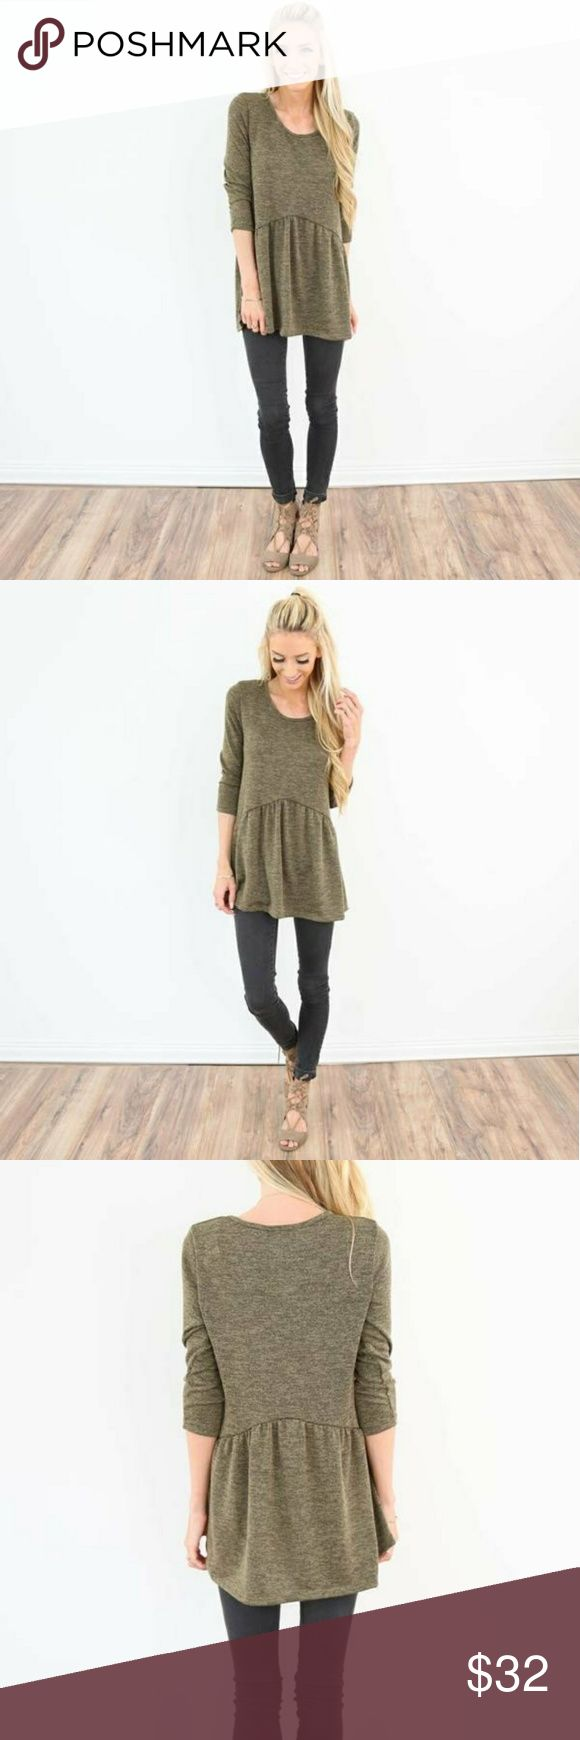 "Duke Peplum Sweater This cute olive green sweater is so soft & comfy! Model is 5' 3"" wearing a size small. Shop Stevie Sweaters"